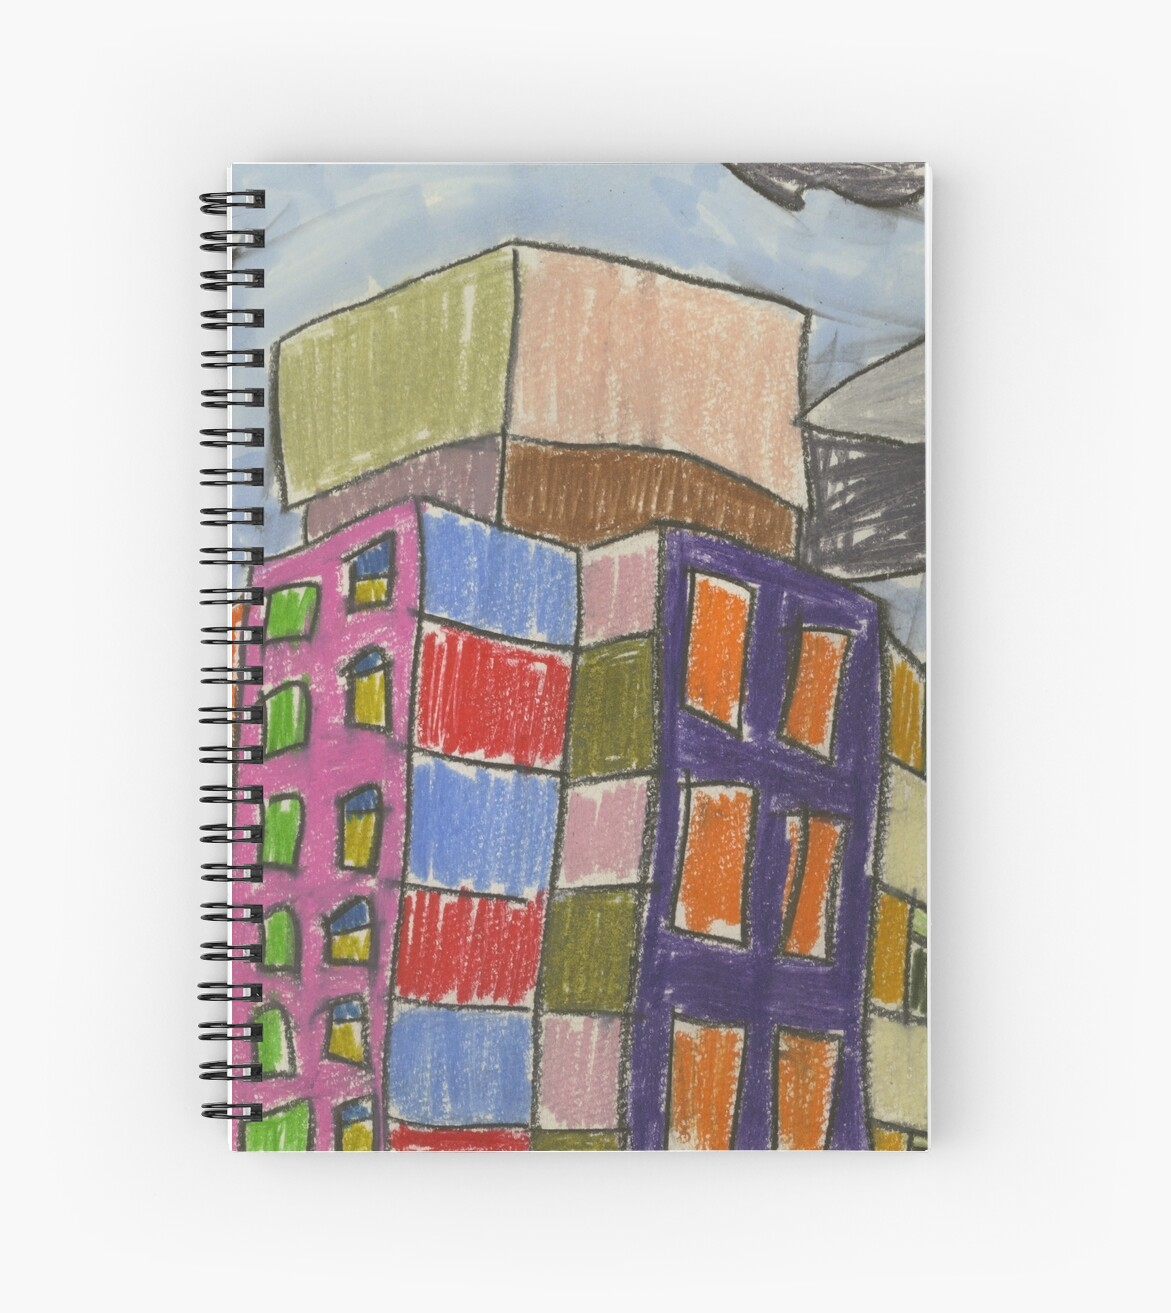 City XXXIV (2013) (Redfern) - drawing by artcollect by artcollect